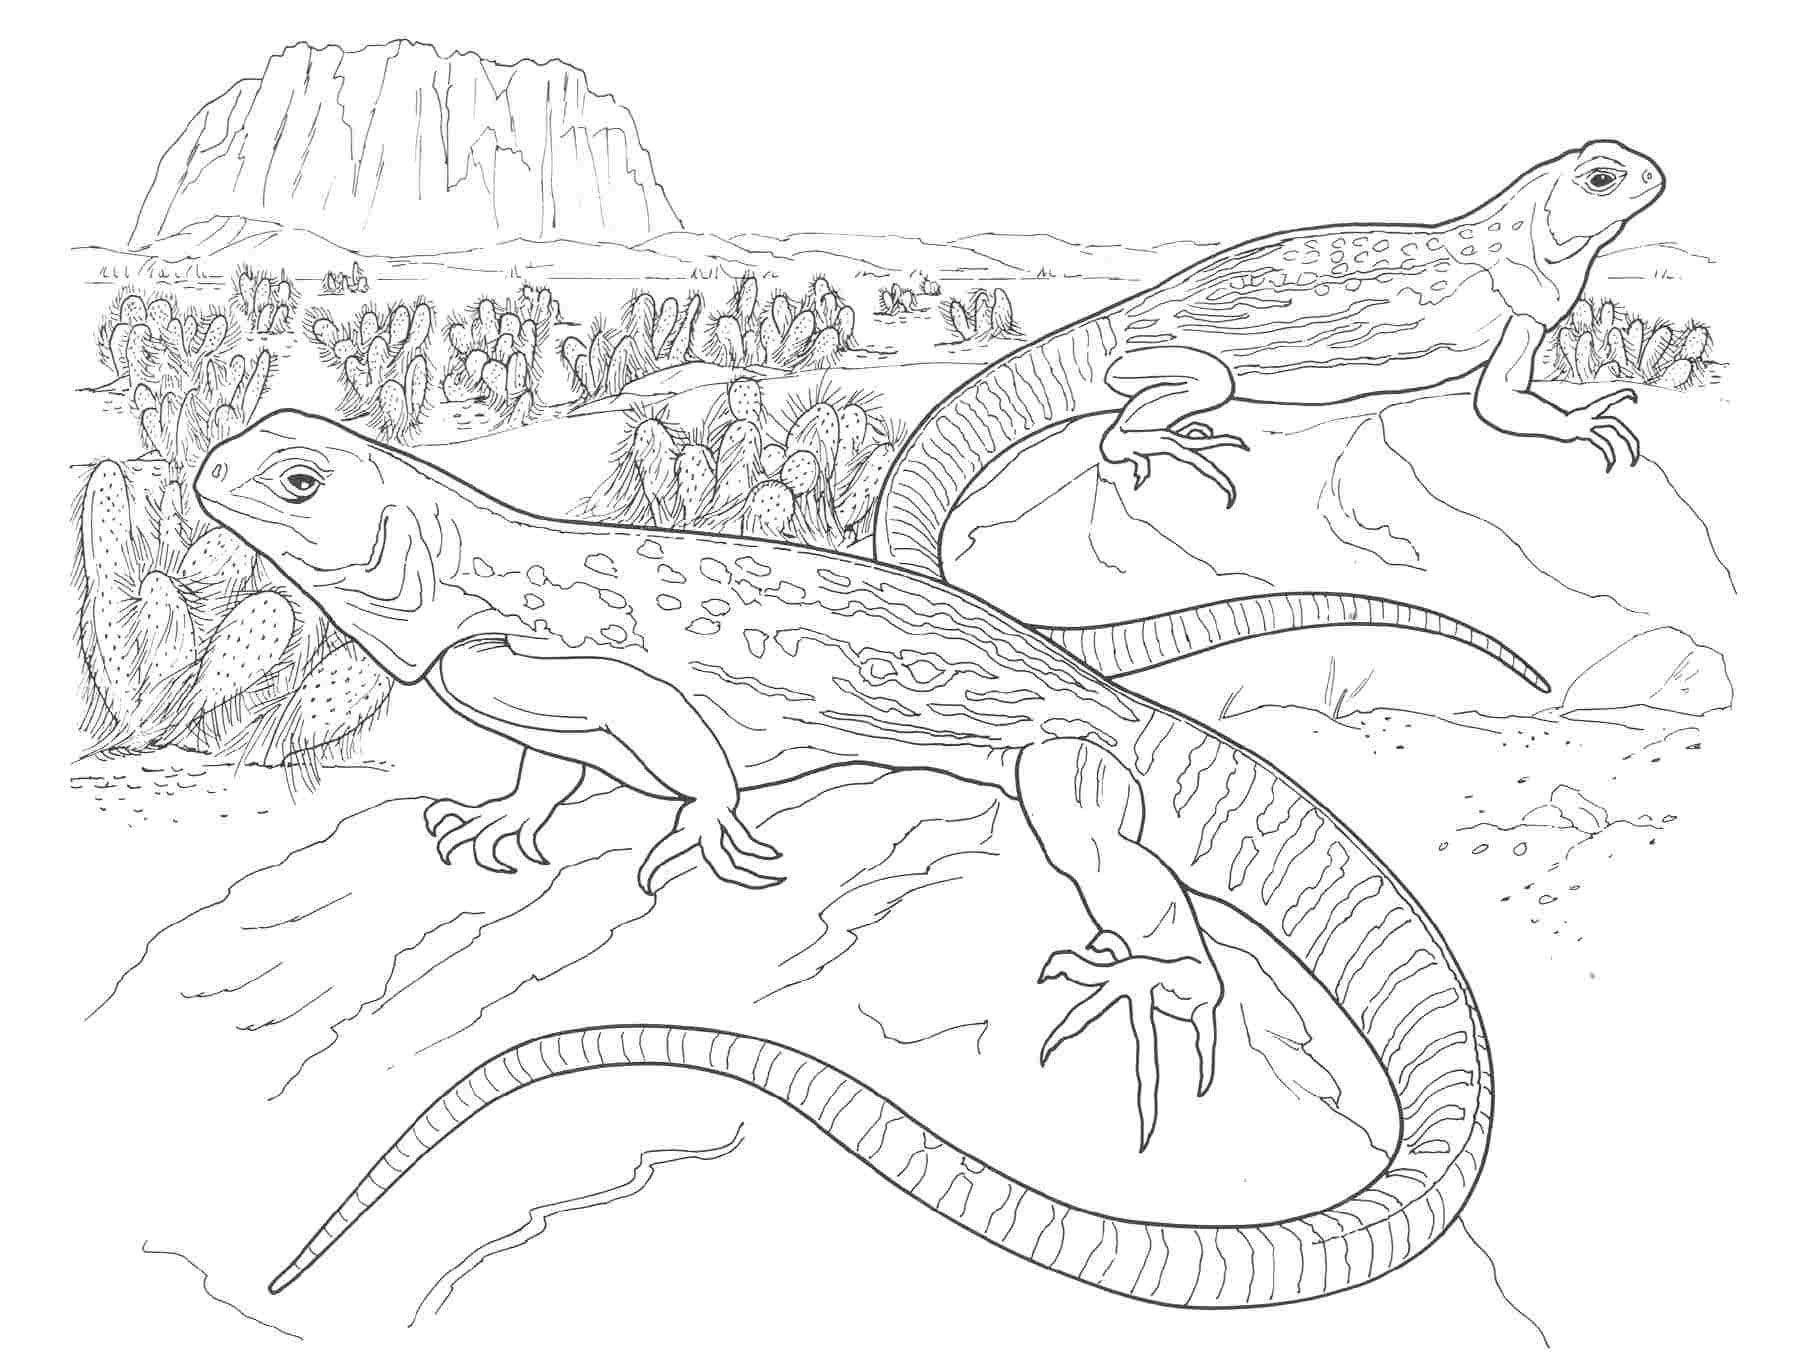 North American Wildlife Coloring Pages | Desert Animals Coloring Pages : Whitetail Pairie Dog